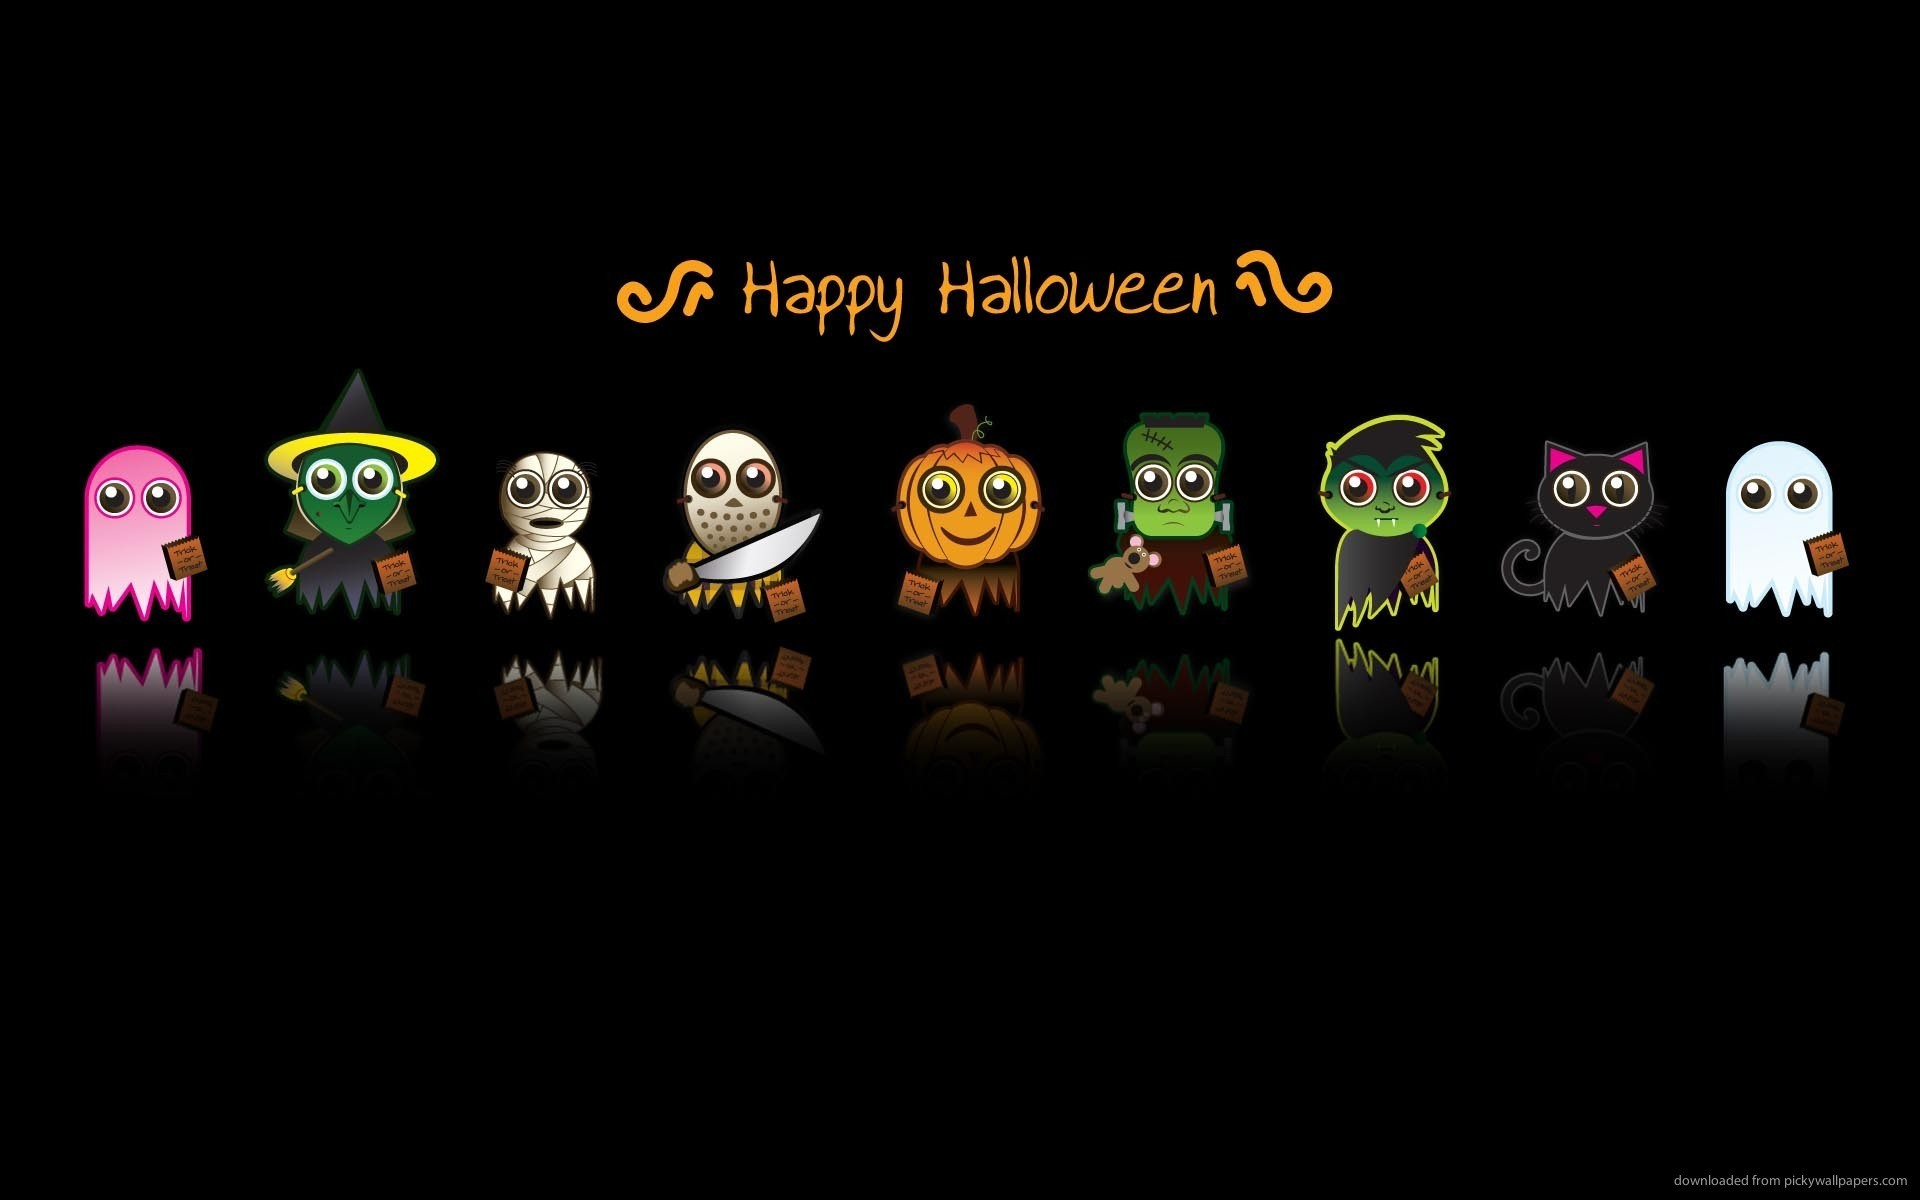 Cute Halloween Desktop Wallpaper 61 images 1920x1200